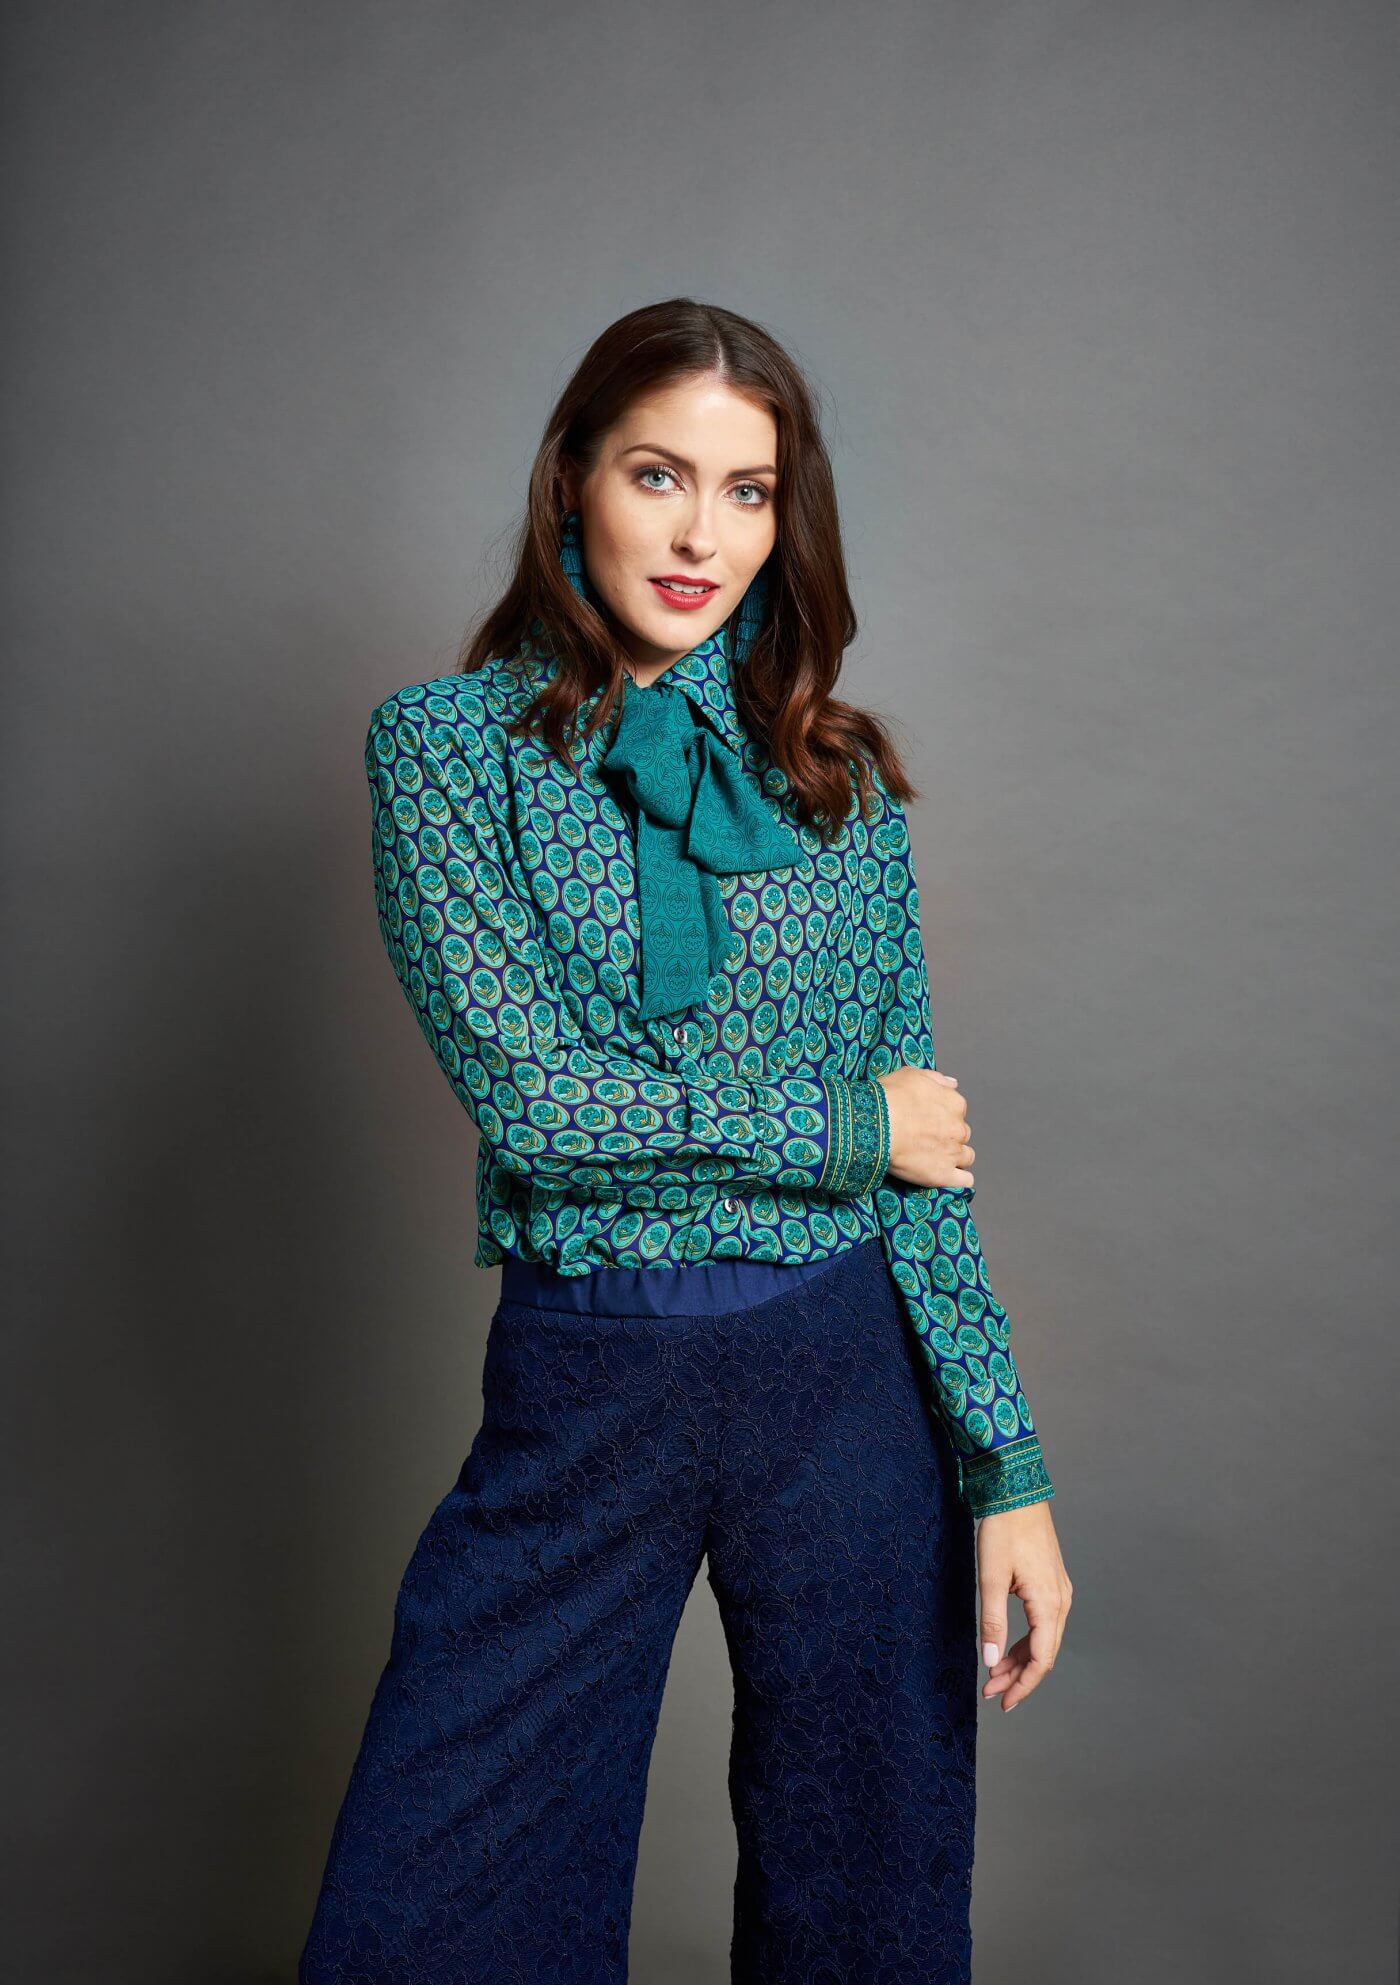 Women Modelling Bowtie Shirt | The Mustcard